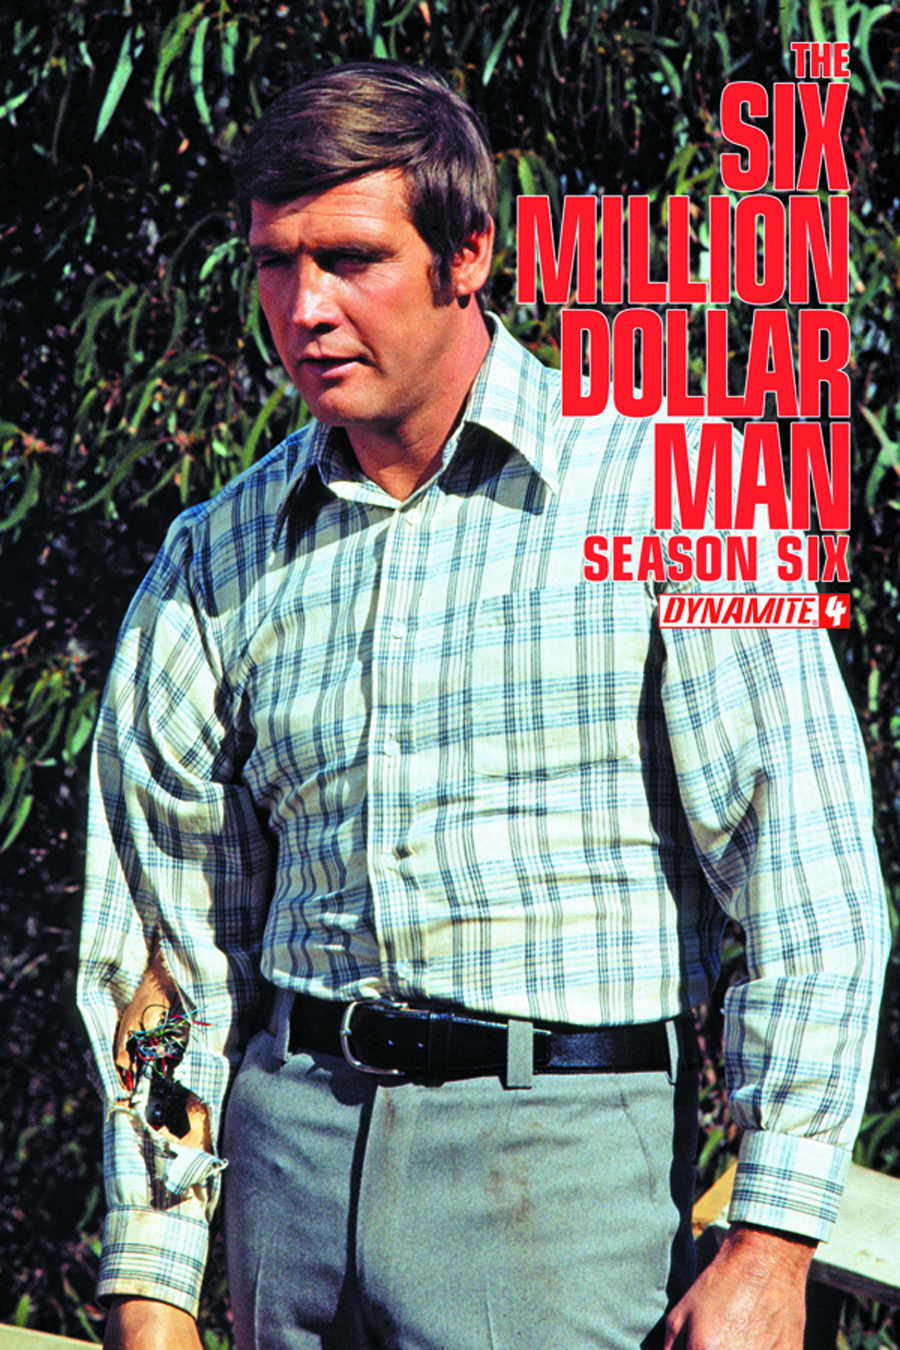 SIX MILLION DOLLAR MAN SEASON 6 #4 EXC SUBSCRIPTION CVR